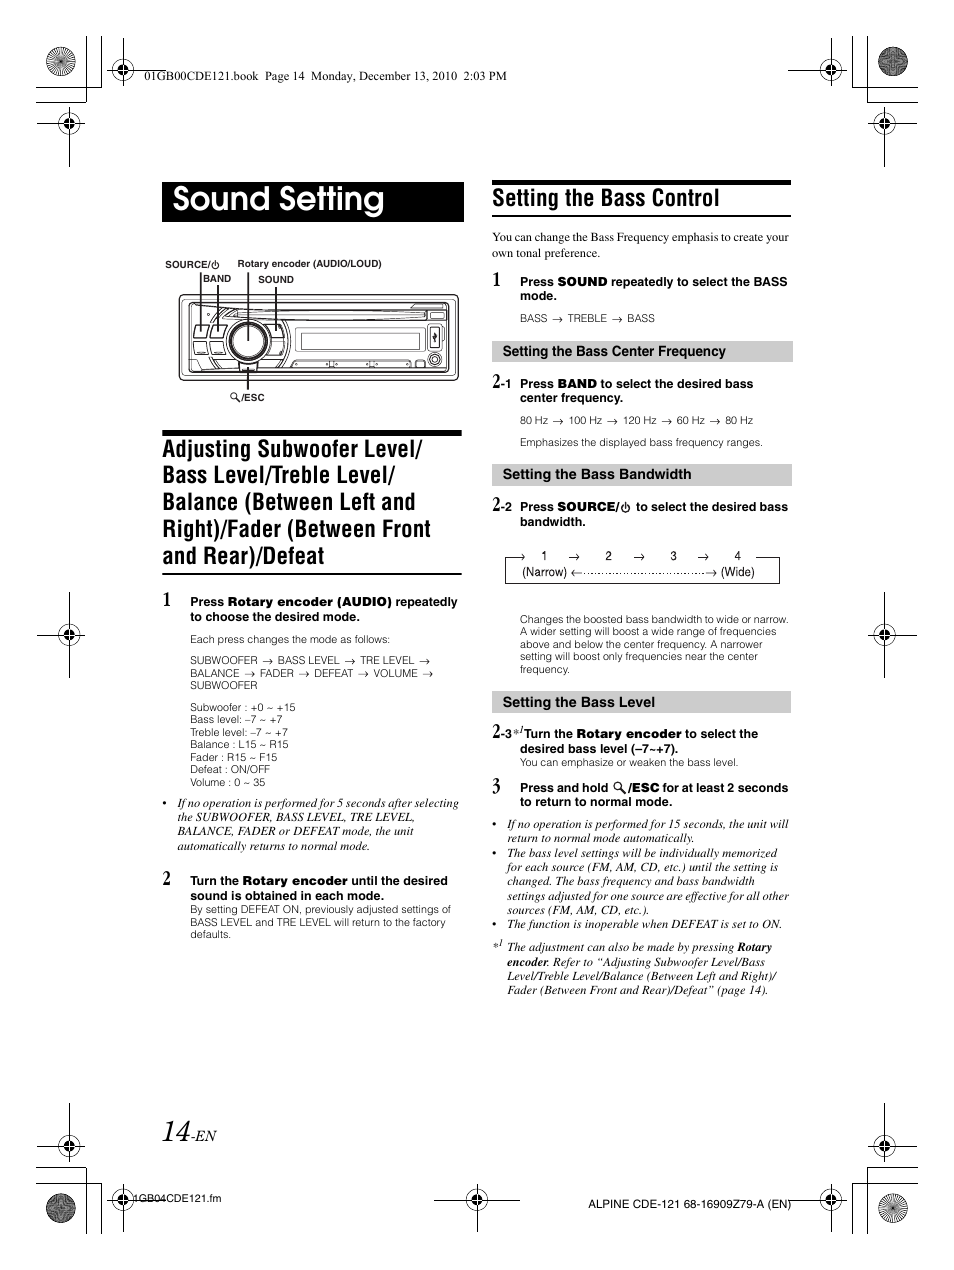 Alpine Car Audio Cde 121 Manual Wire Diagram Sound Setting The Bass Control User Page